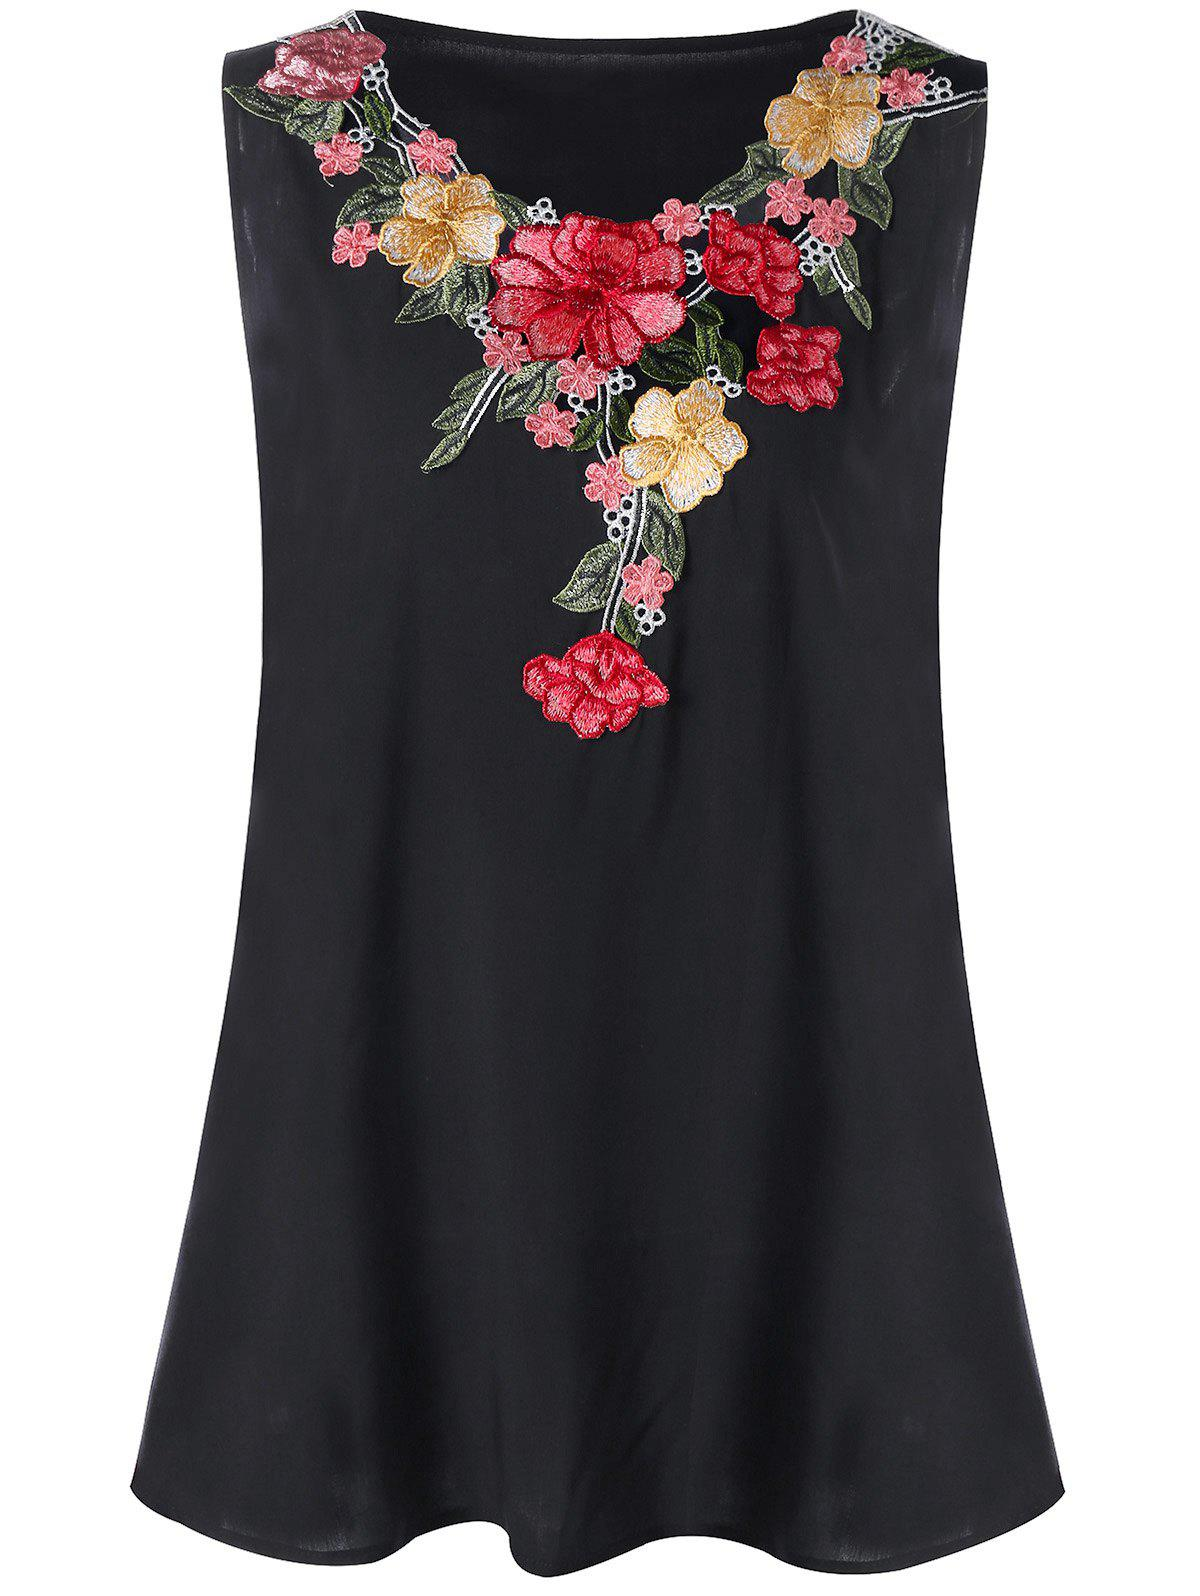 Plus Size Floral Embroidery Tank Top plus size floral embroidery dress